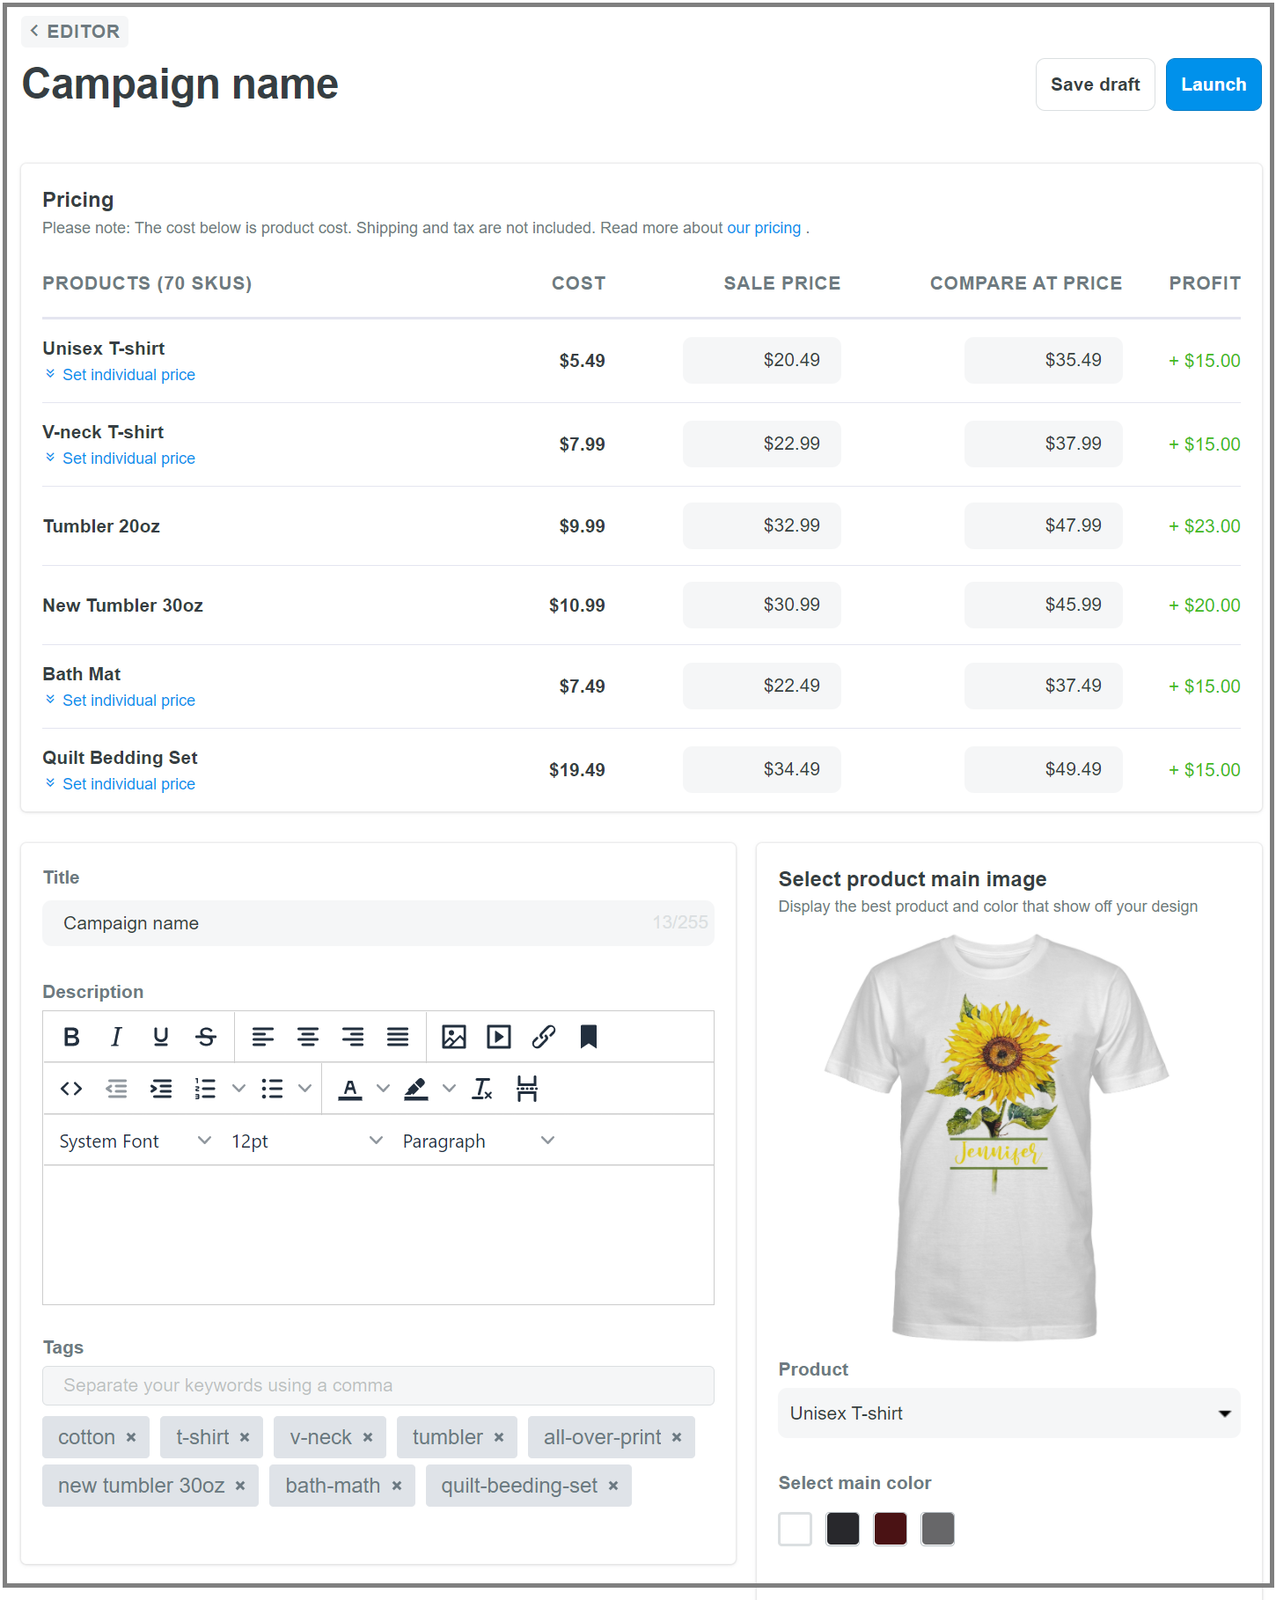 Page where you can edit price, title, description and product tags